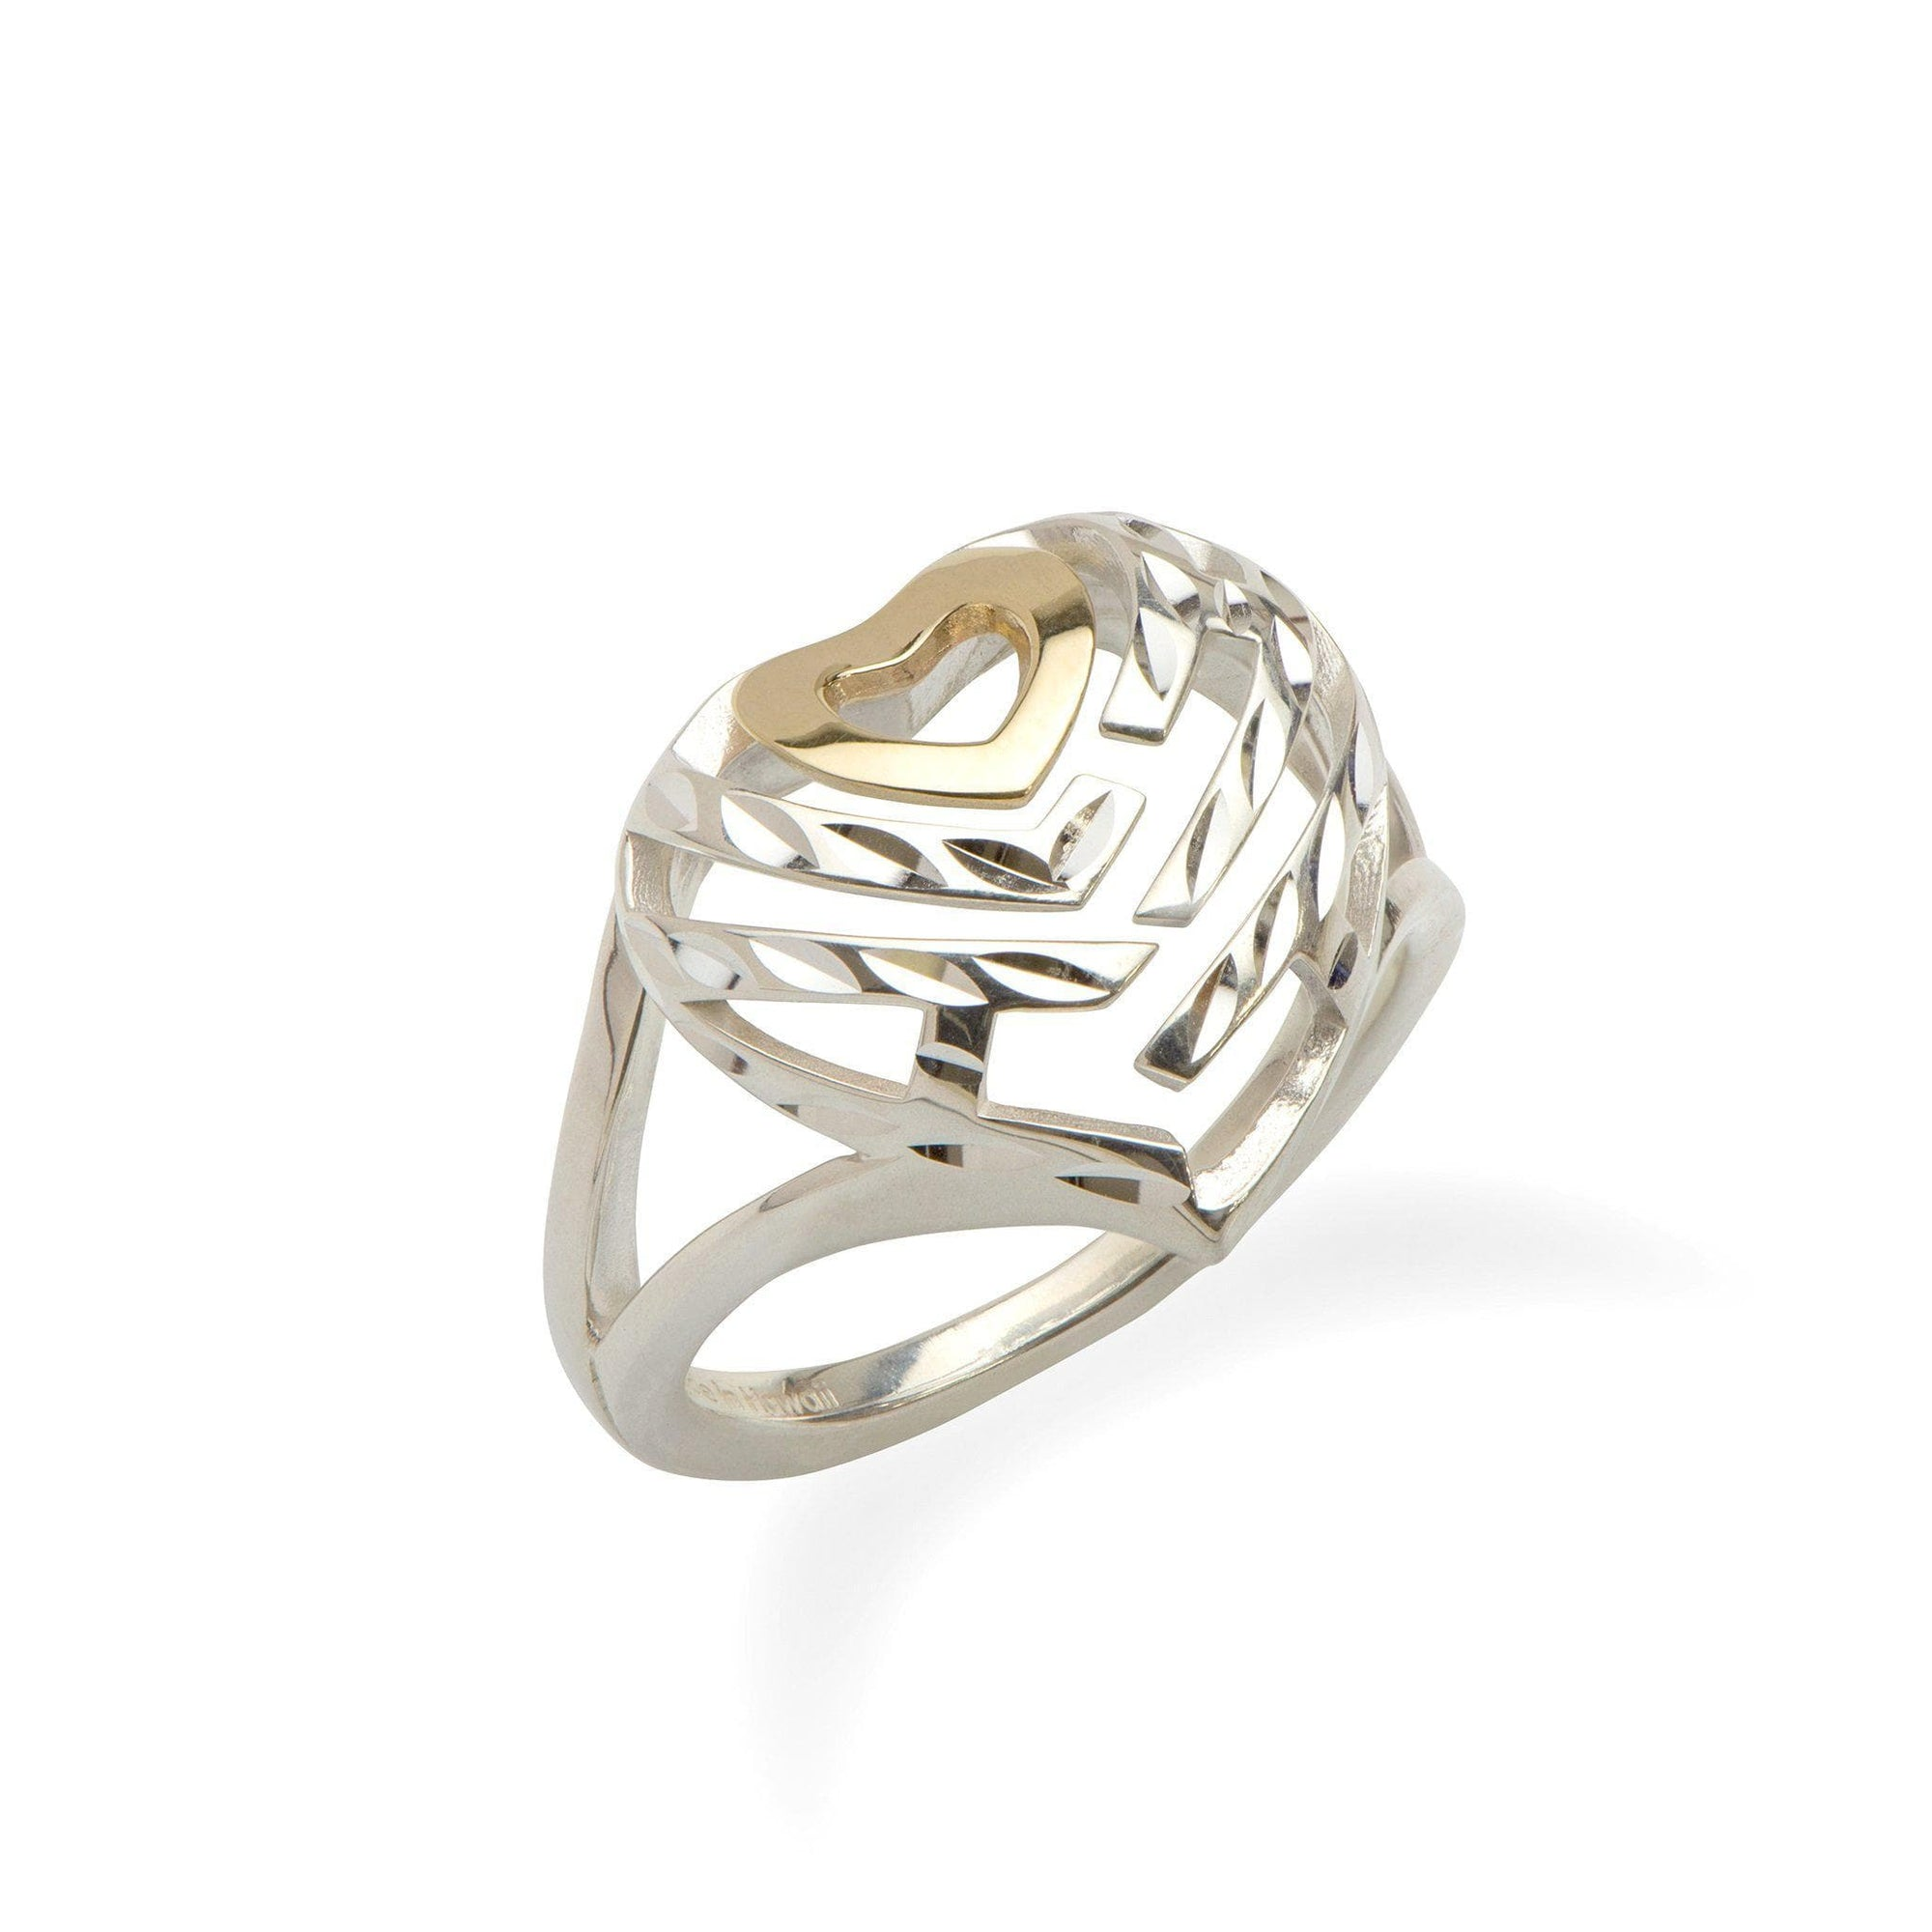 Aloha Heart Ring in Sterling Silver & 14K Yellow Gold - 17mm-[SKU]